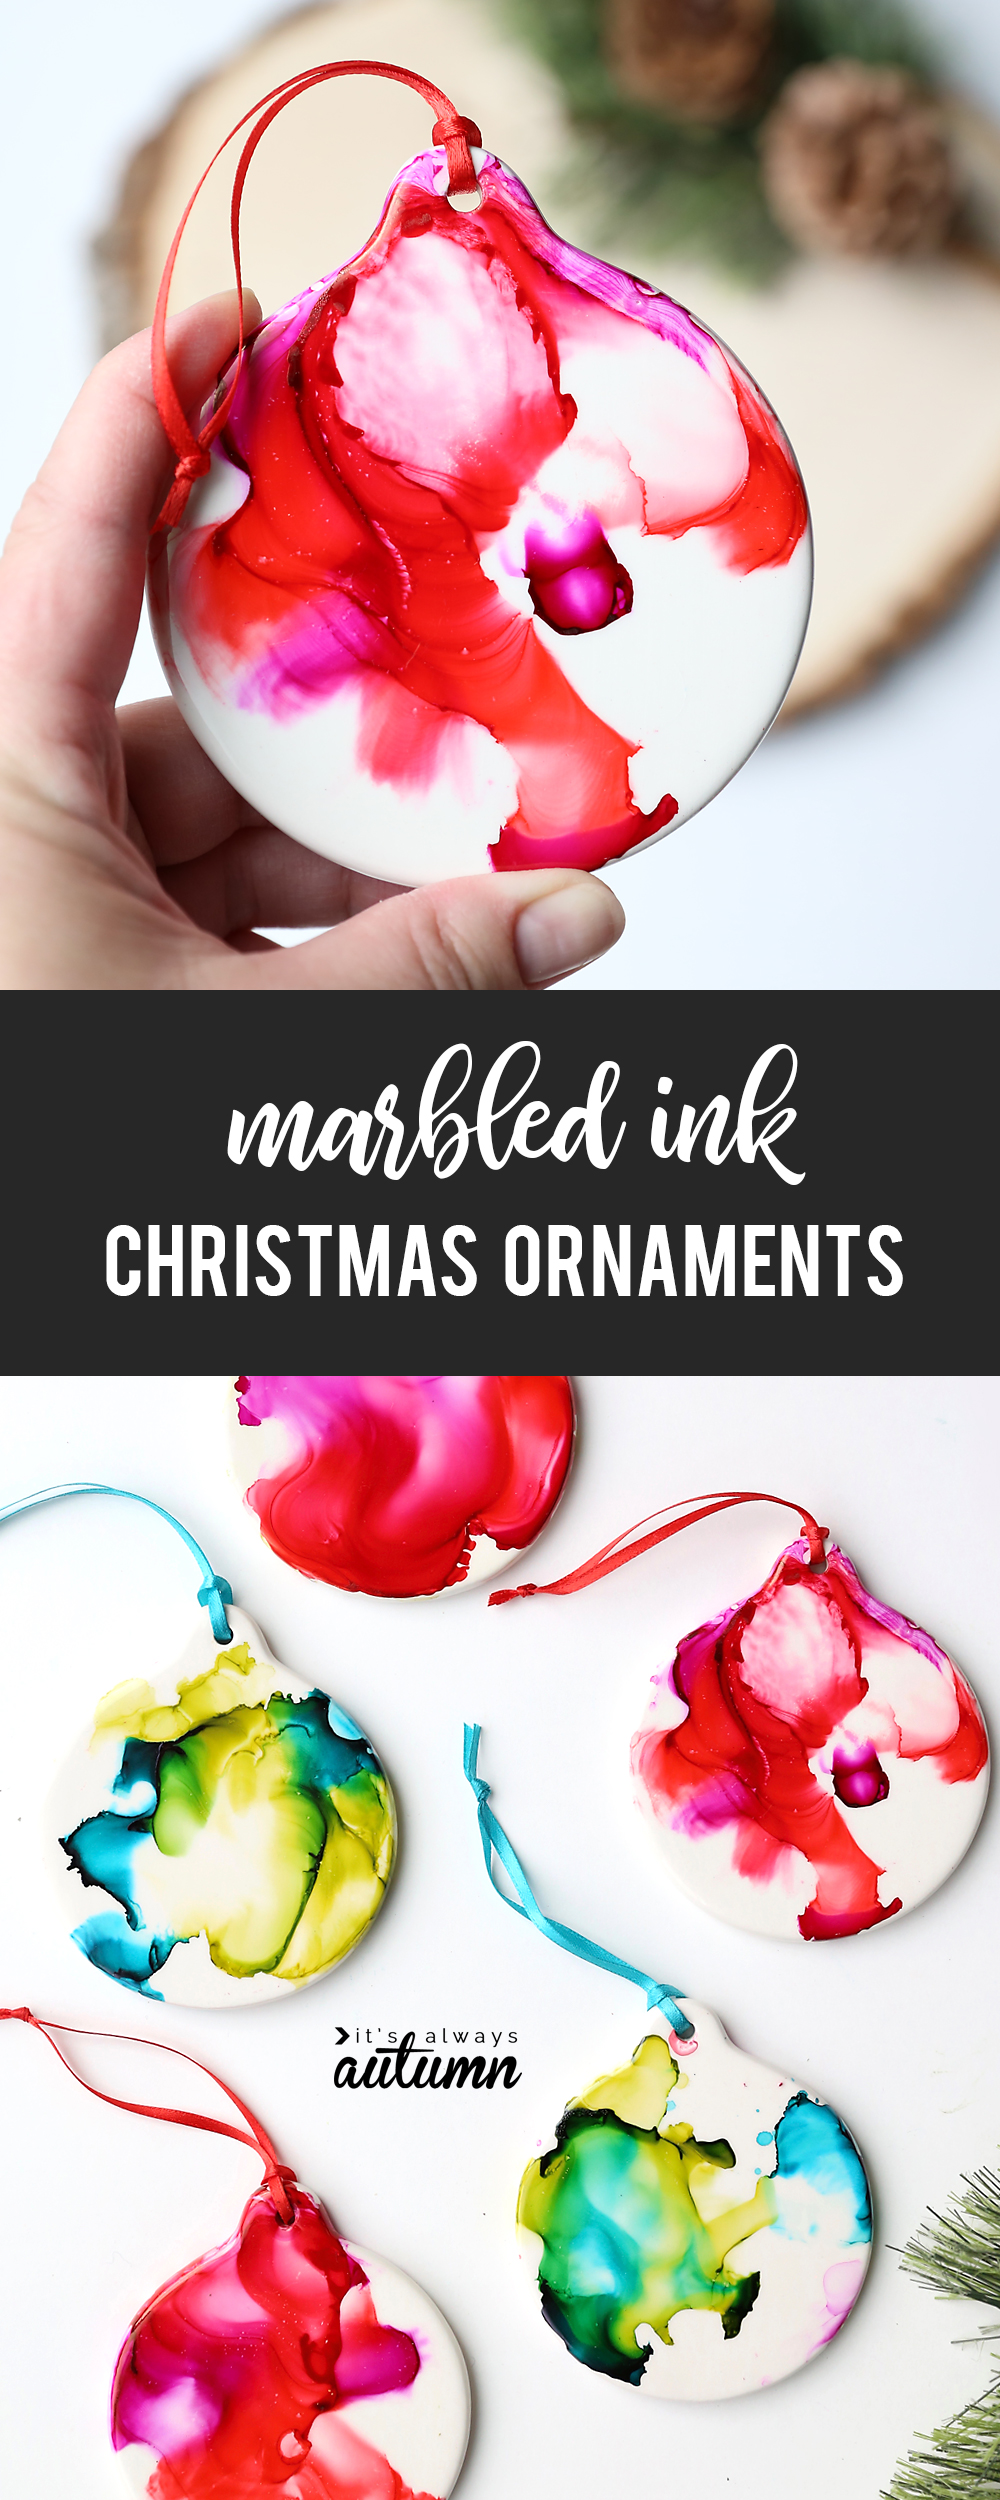 These pretty marbled Christmas ornaments are made with alcohol ink and FIRE! Great Christmas craft idea for kids.